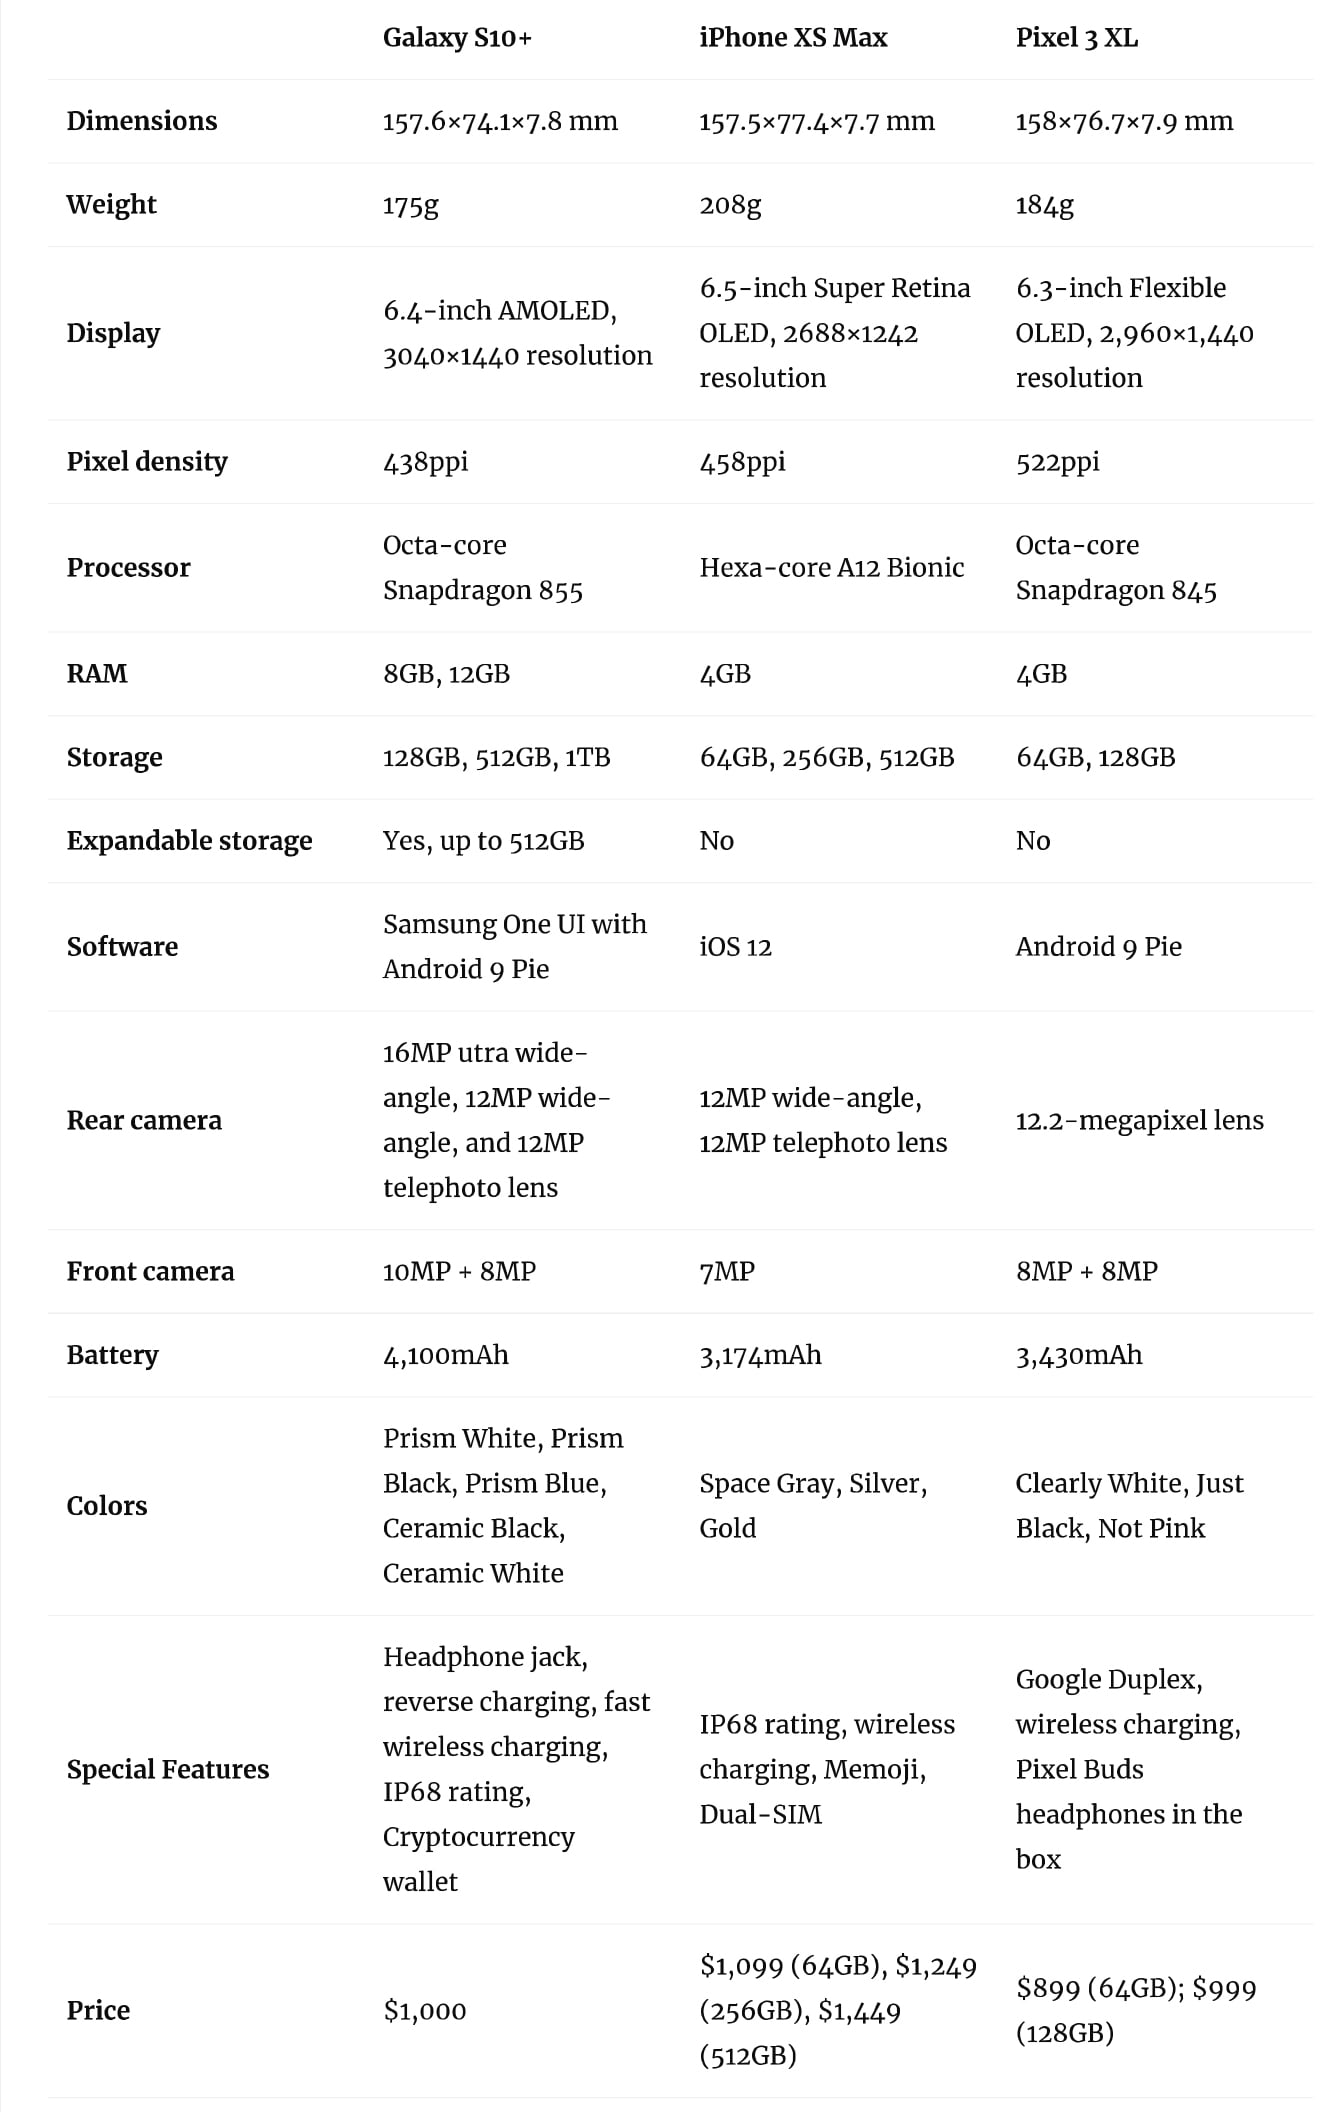 Galaxy S10 Plus vs iPhone XS Max vs Pixel 3 XL Specs